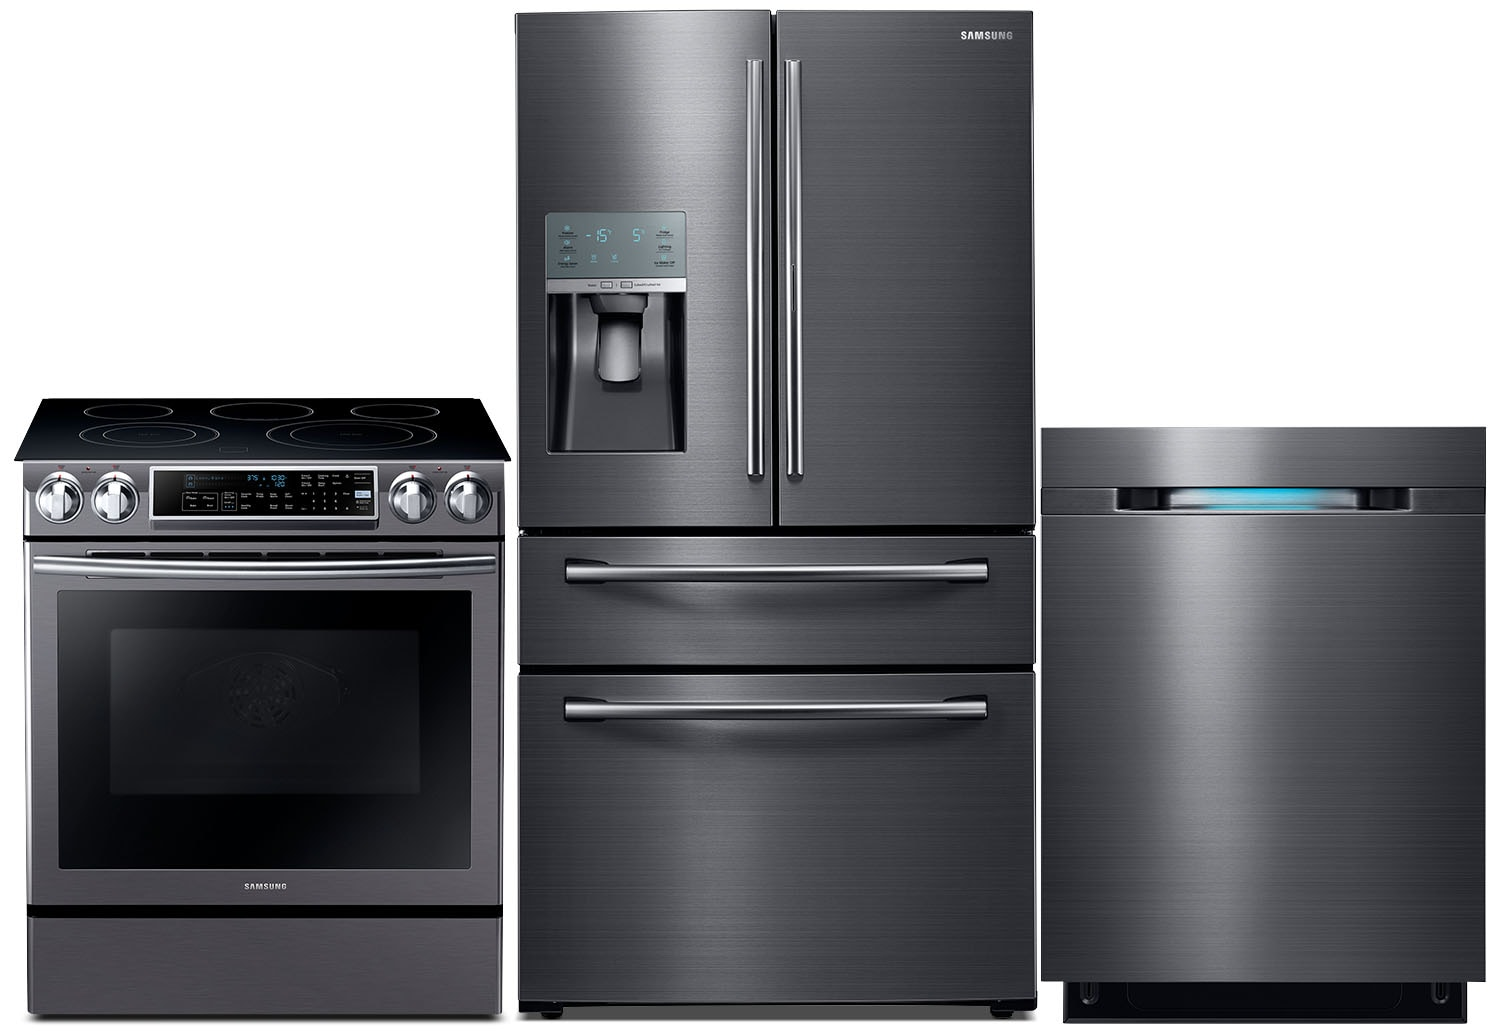 Samsung 27.8 Cu. Ft. Refrigerator, 5.8 Cu. Ft. Range and Dishwasher – Black Stainless Steel